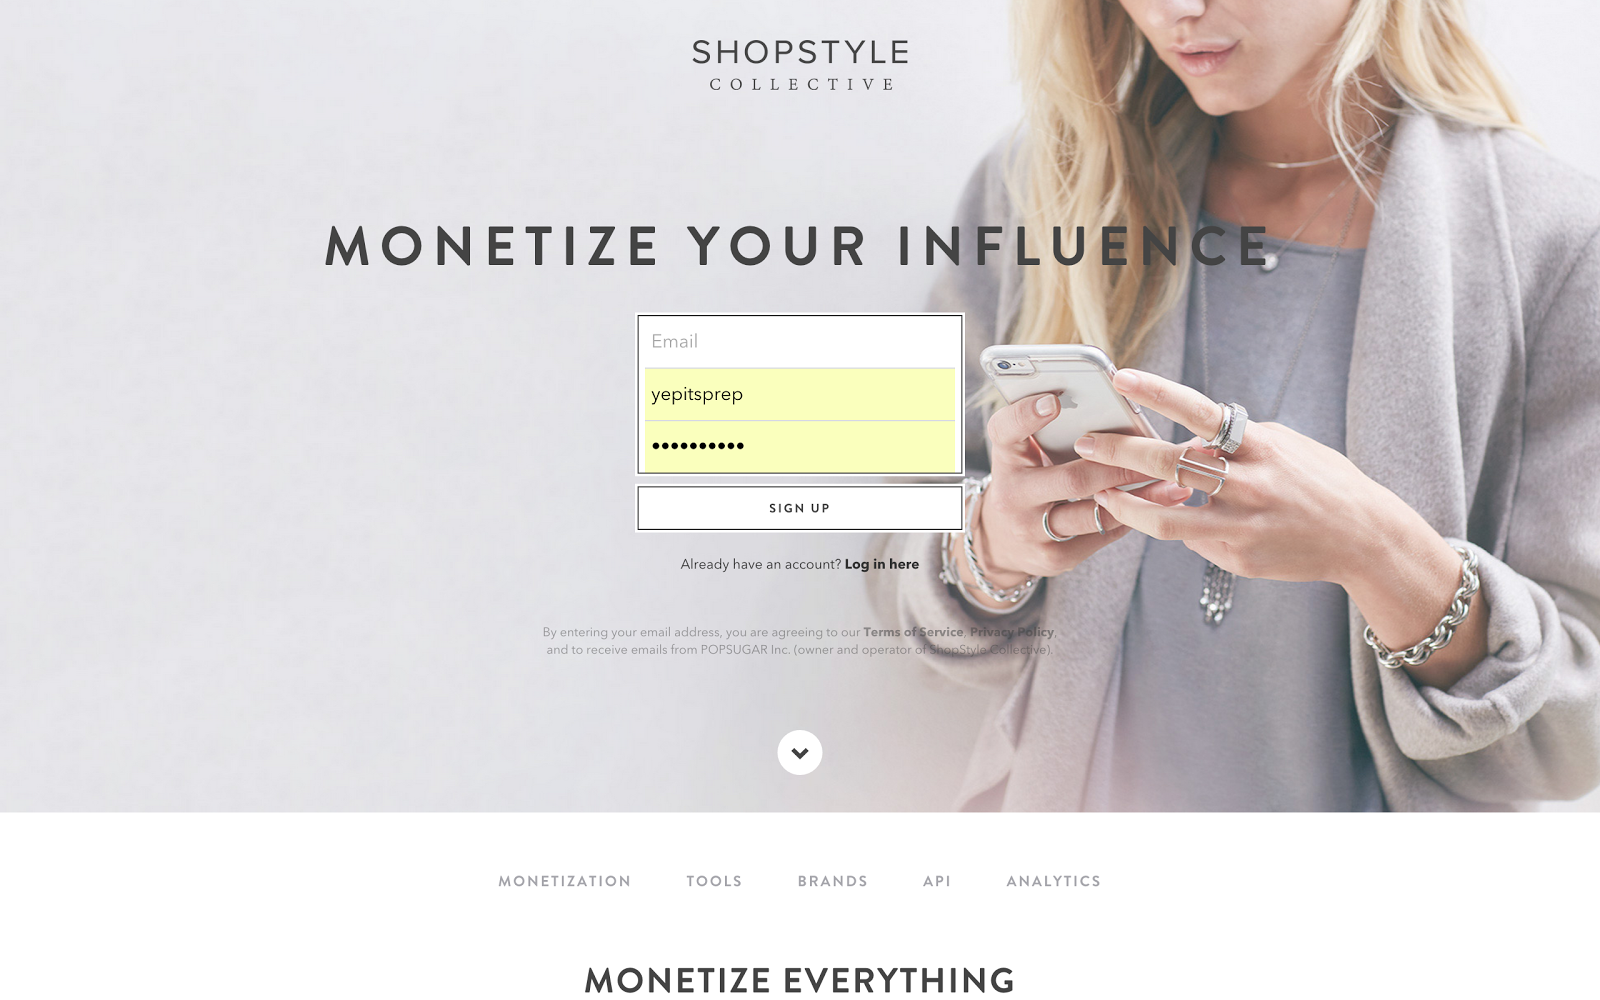 5f8168f74ab A Basic Guide to ShopStyle Collective (Formerly known as Shopsense)